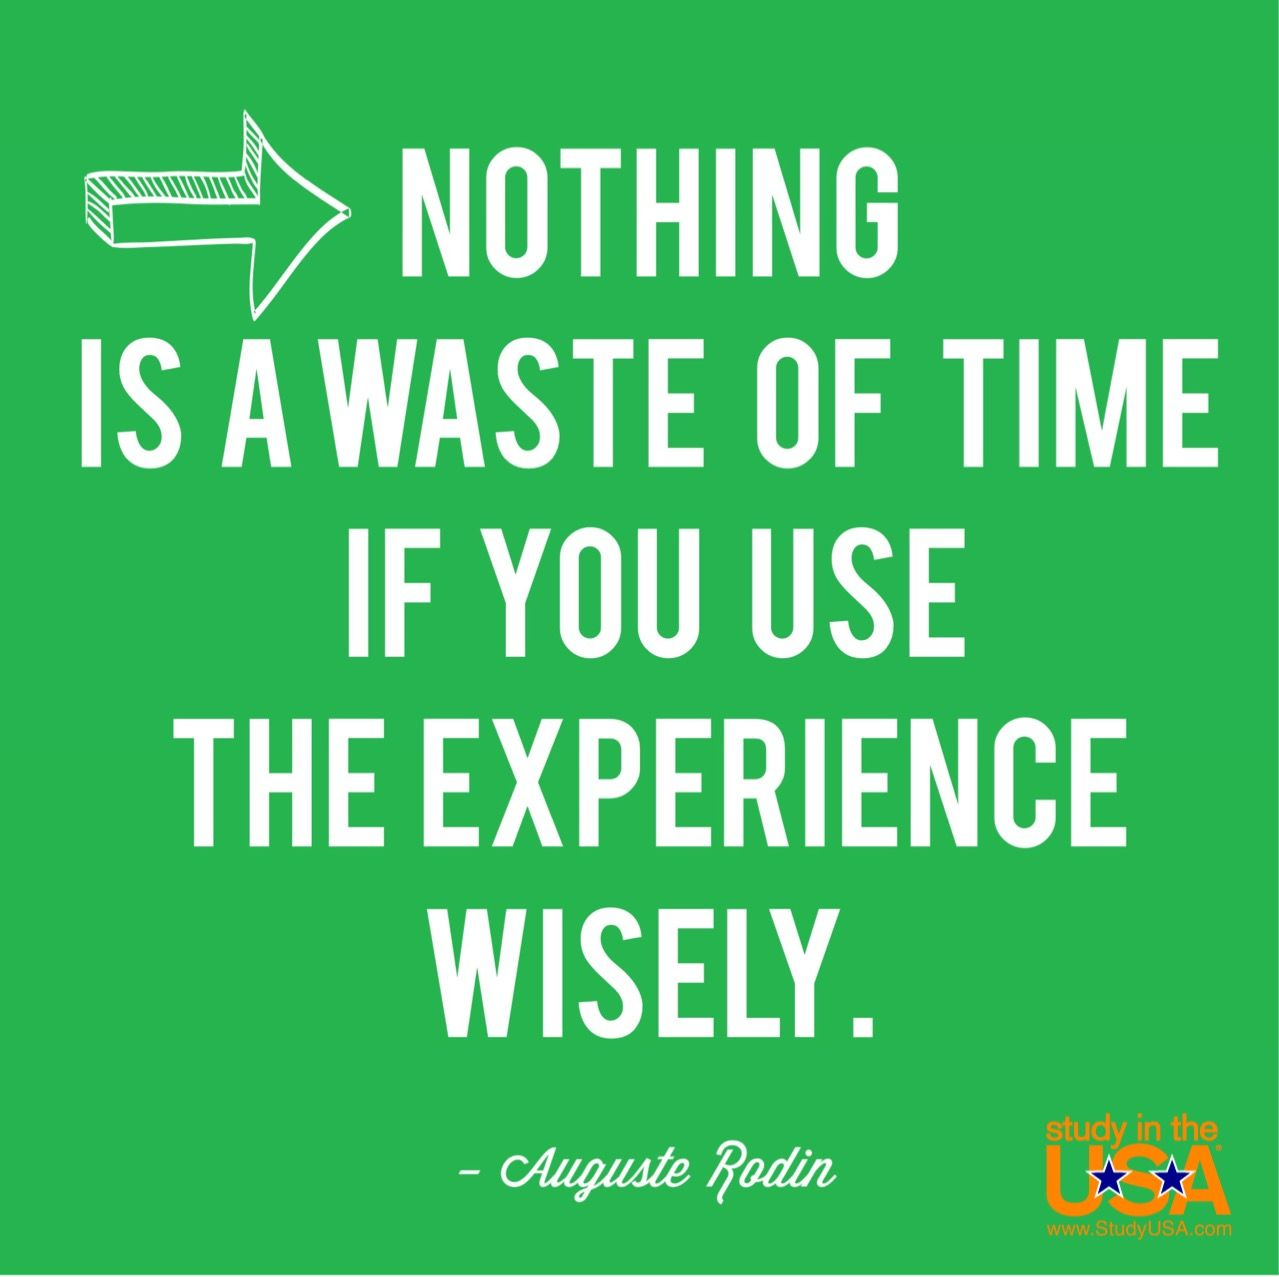 Nothing is a waste of time if you use the experience